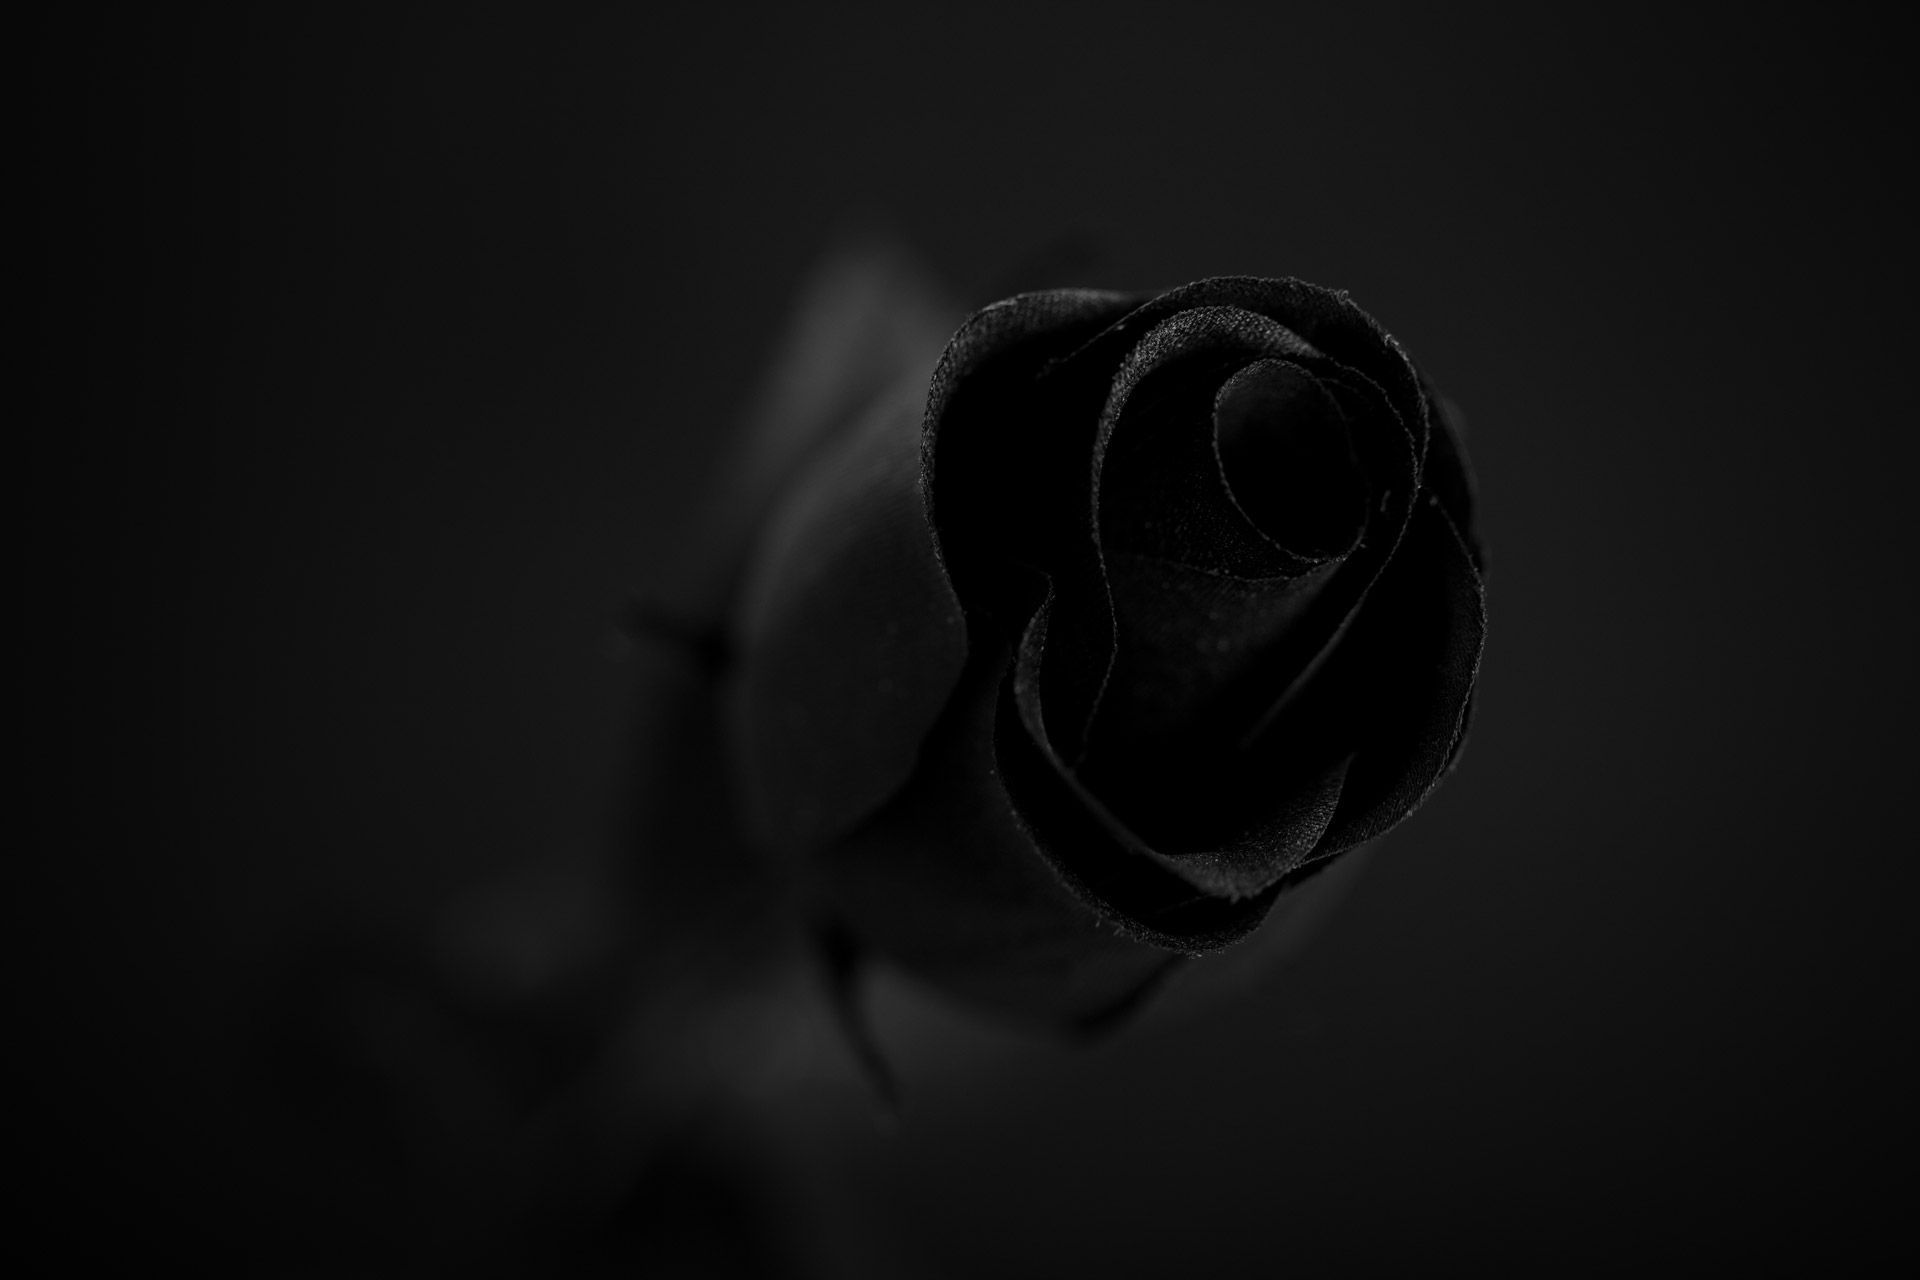 Black Rose Wallpaper Pack